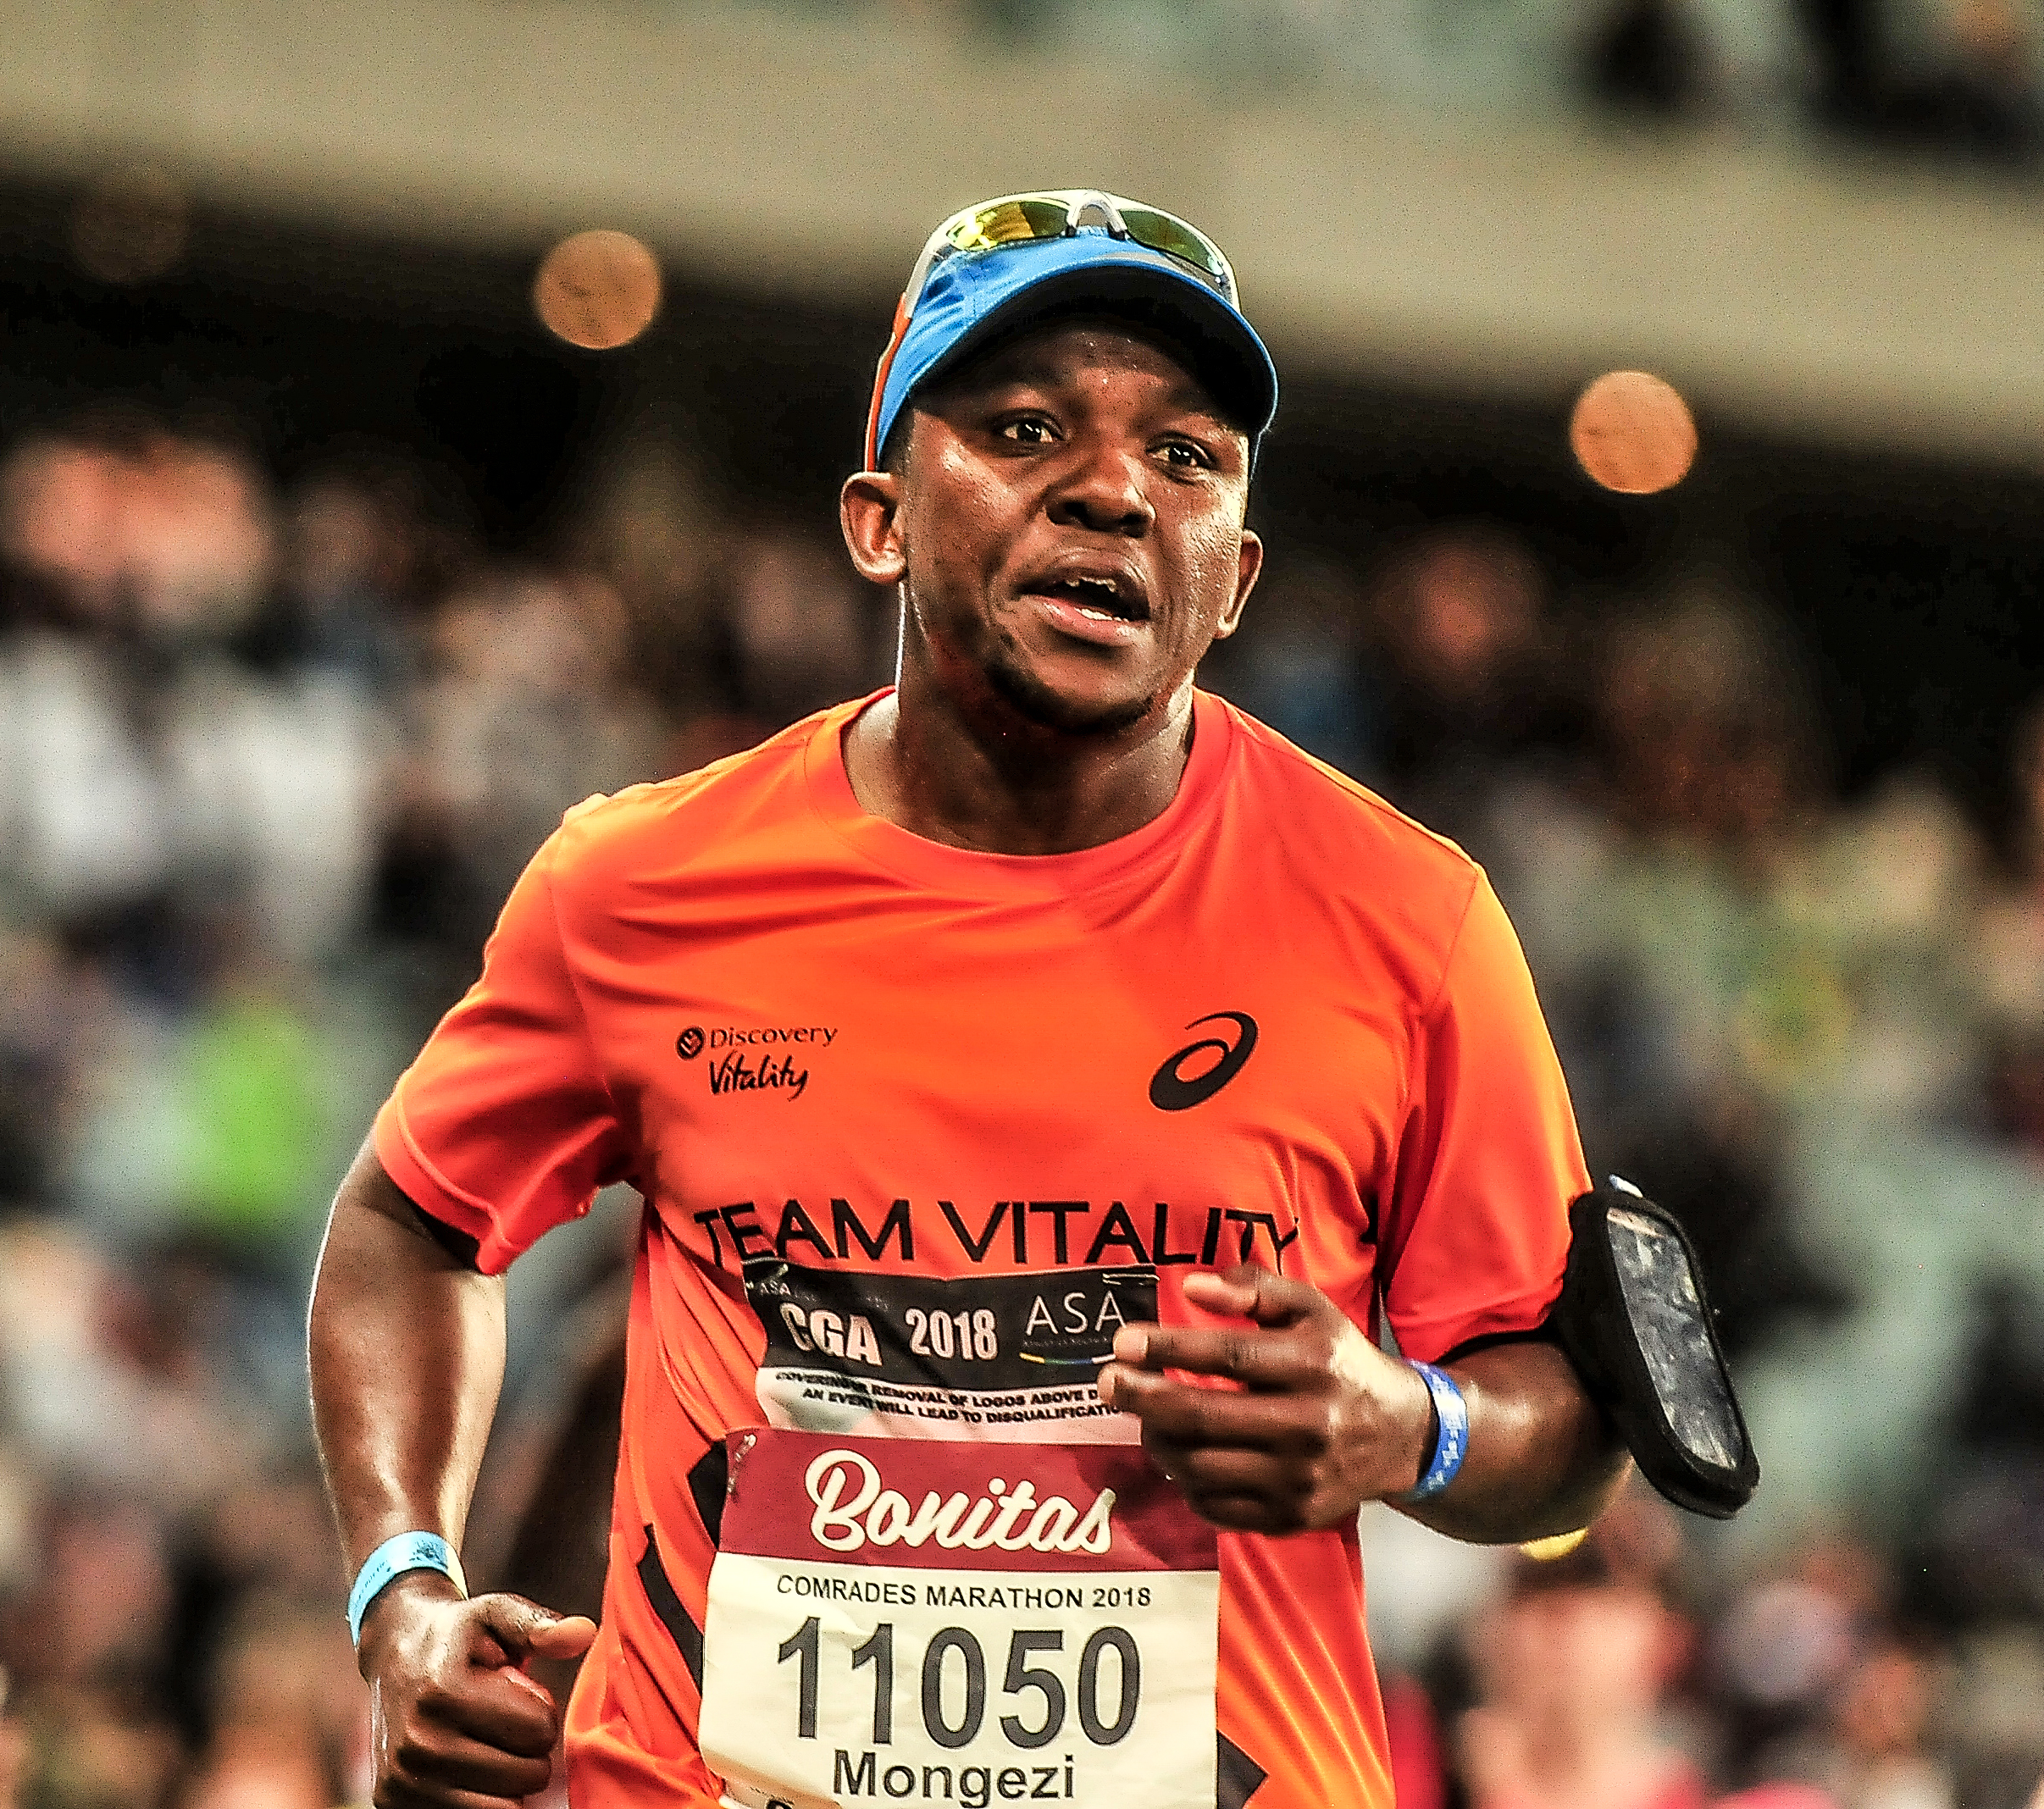 Mongezi Mtati at the Comrades Marathon 2018